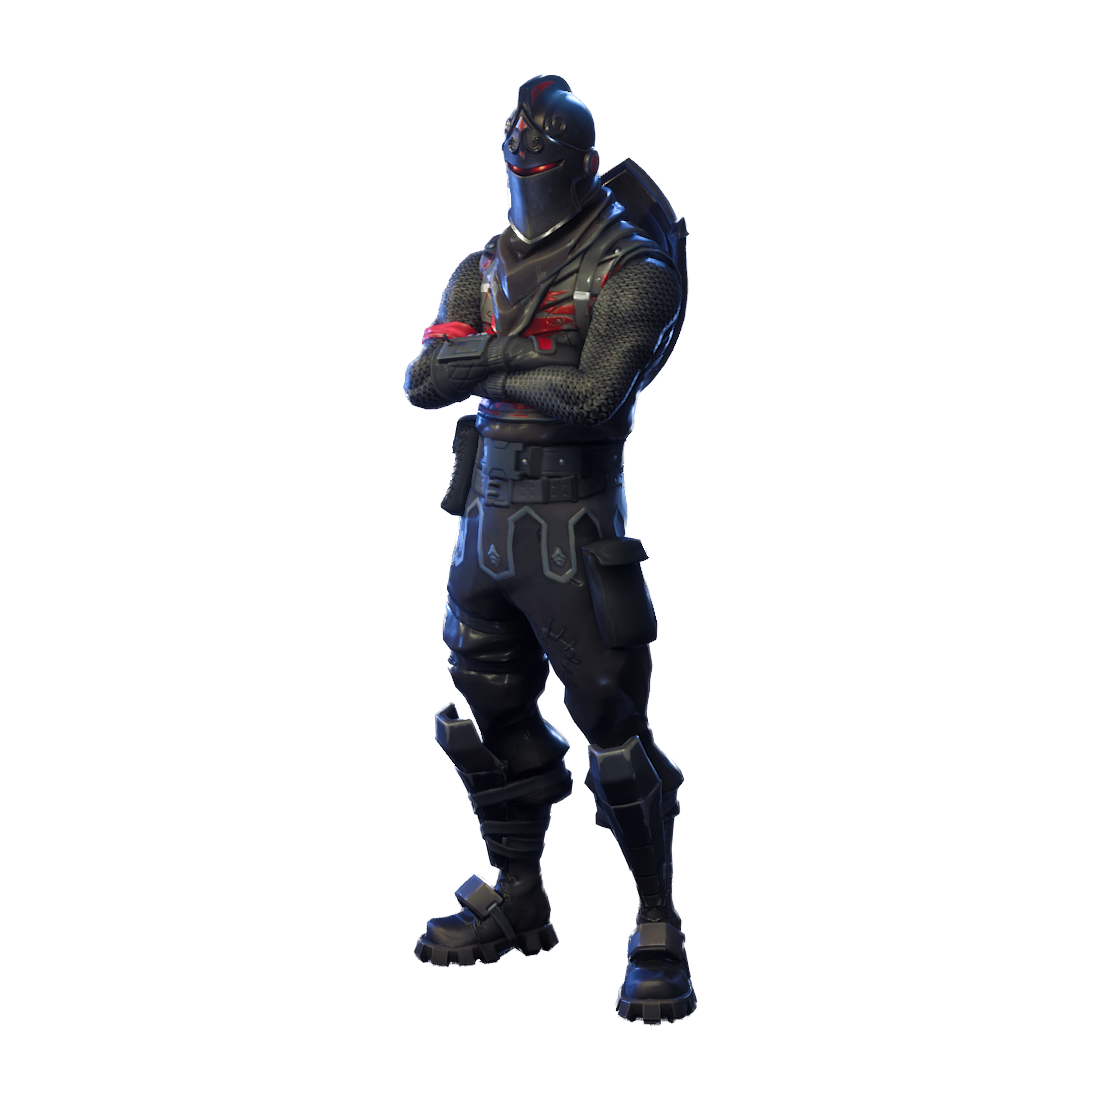 Black knight png. Fortnite image purepng free